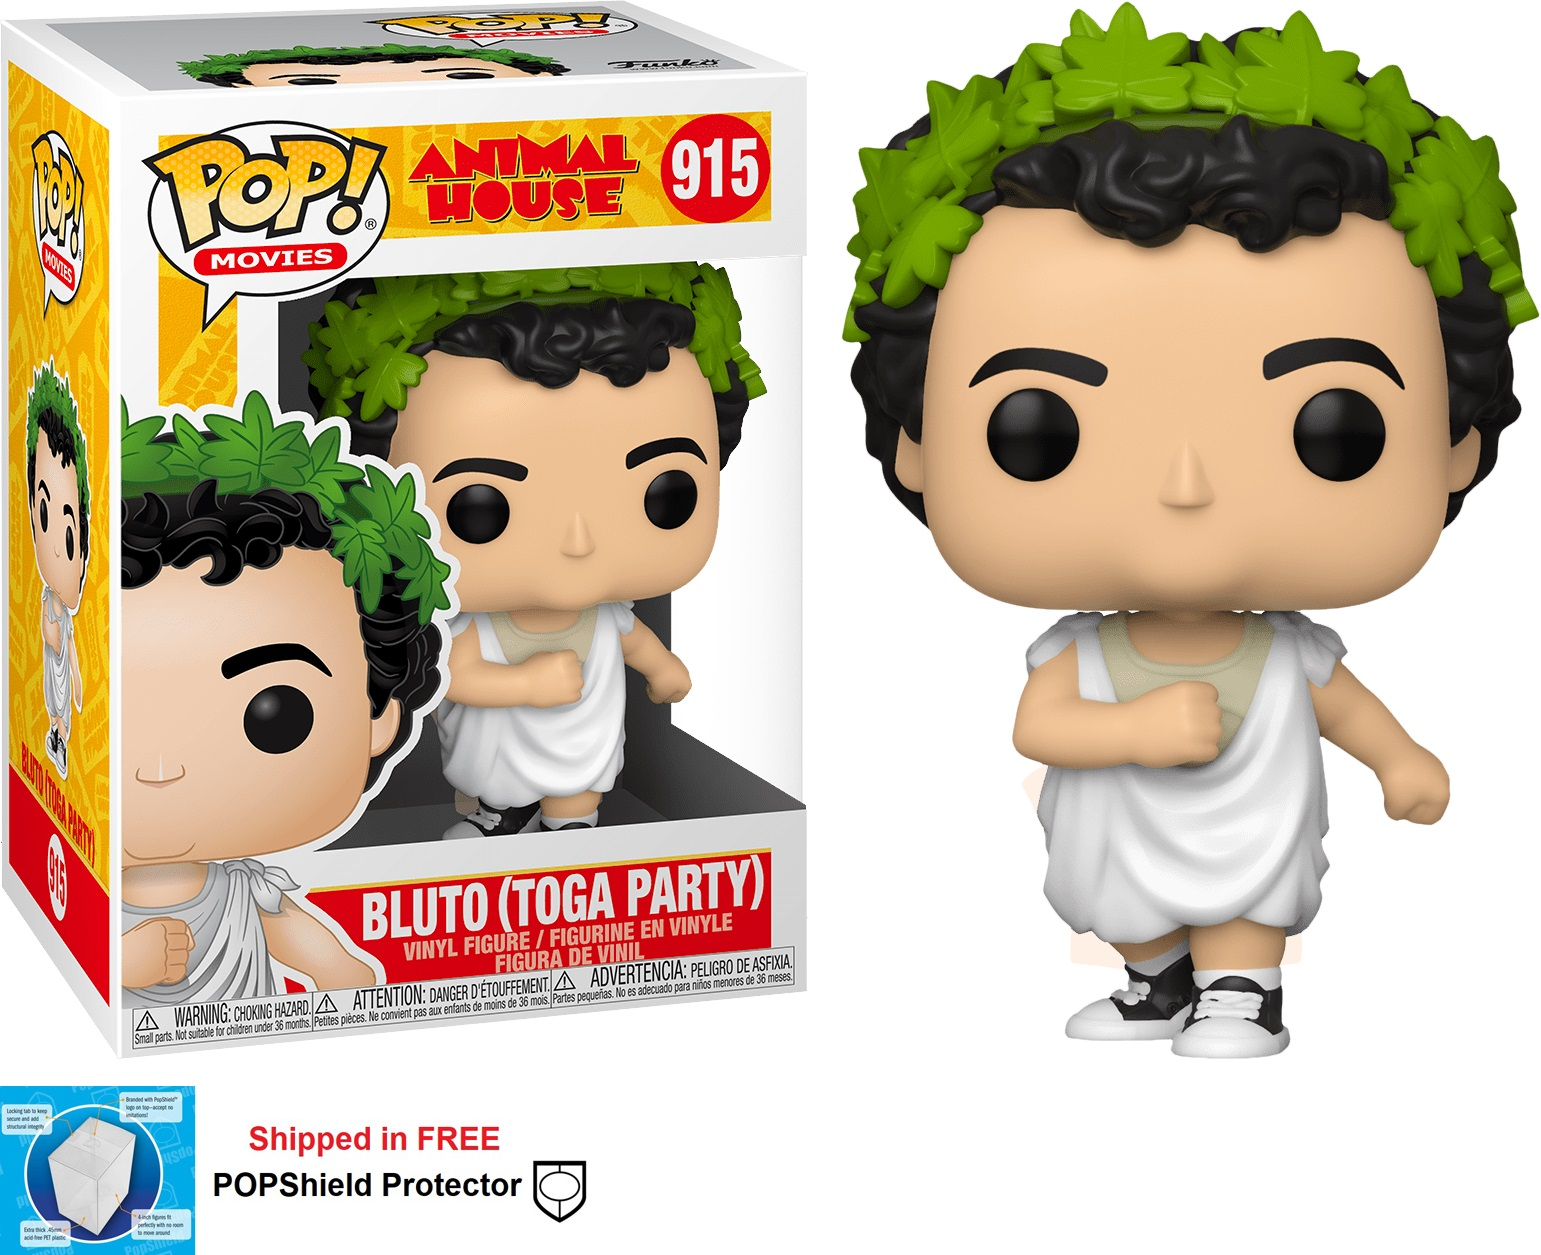 Funko POP Movies Animal House Bluto Toga Party - #915